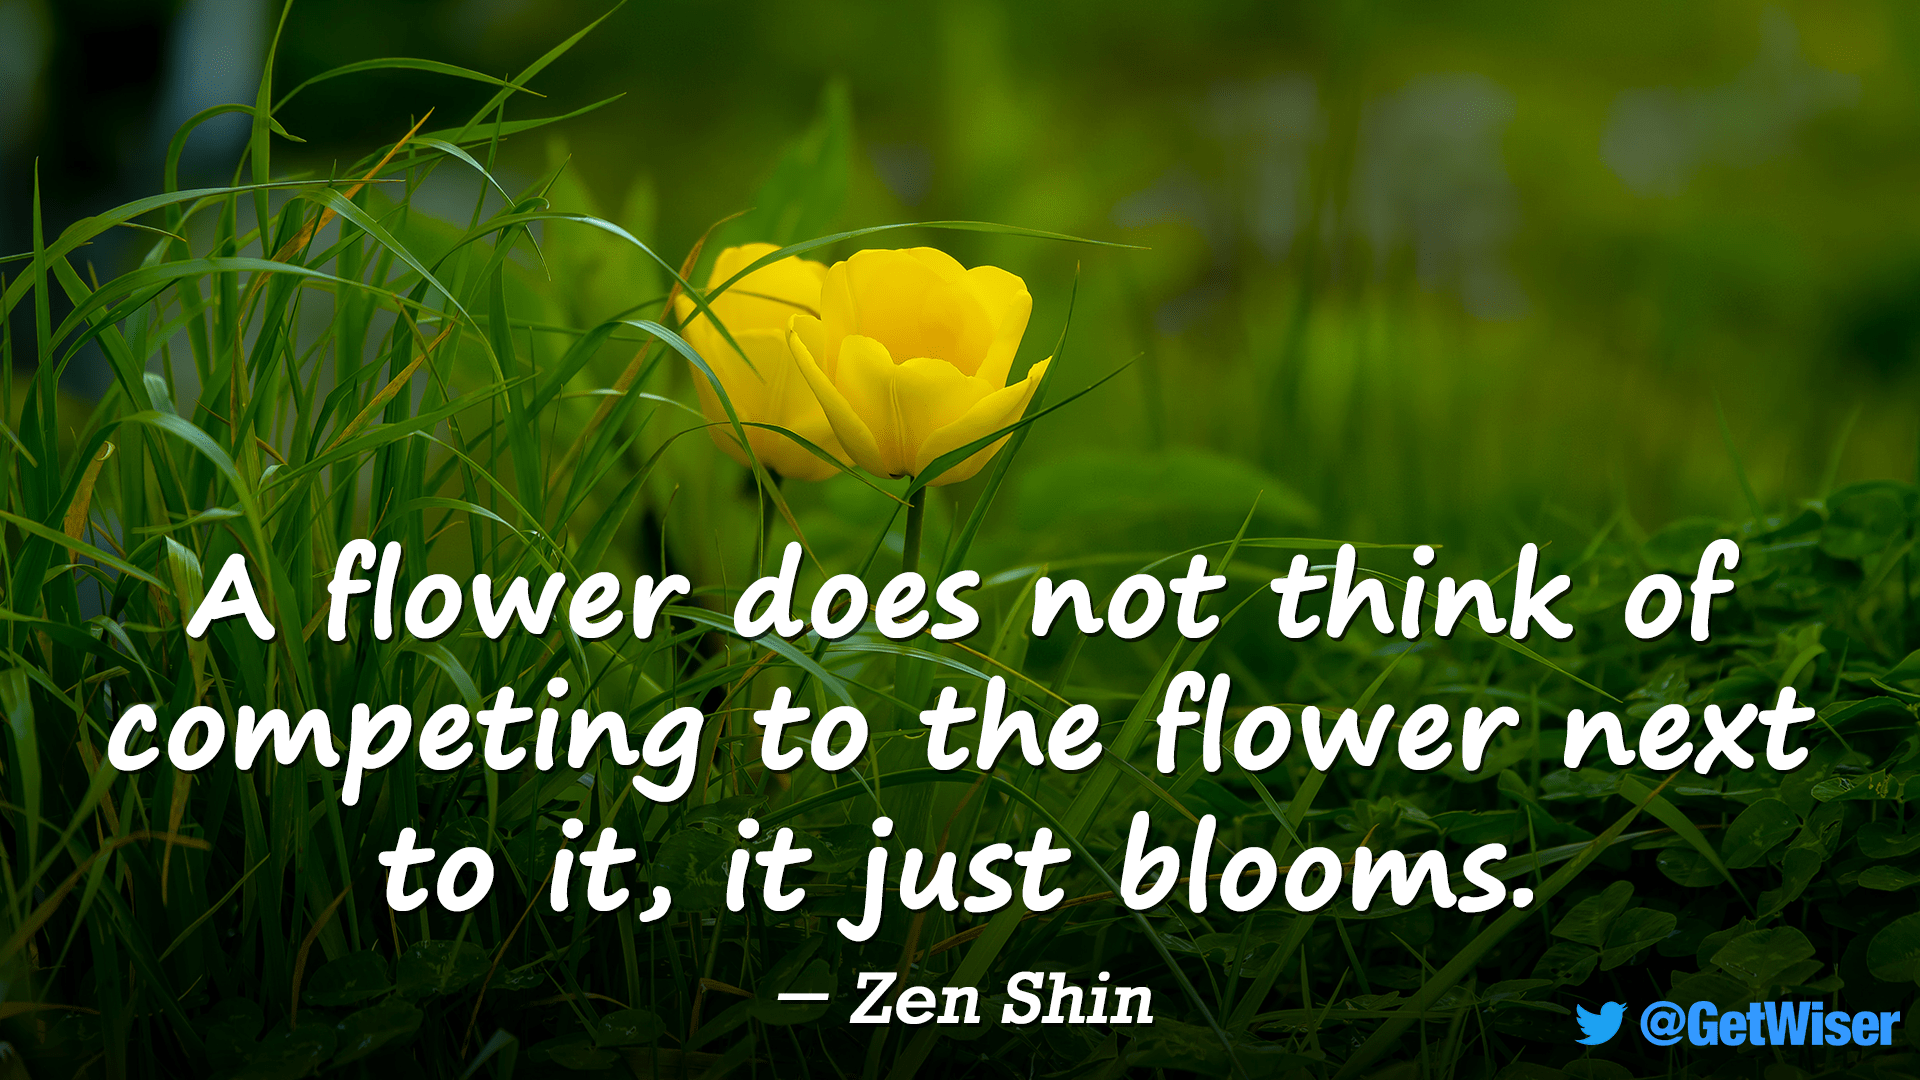 """A flower does not think of competing to the flower next to it, it just blooms."" – Zen Shin [1920×1080]"